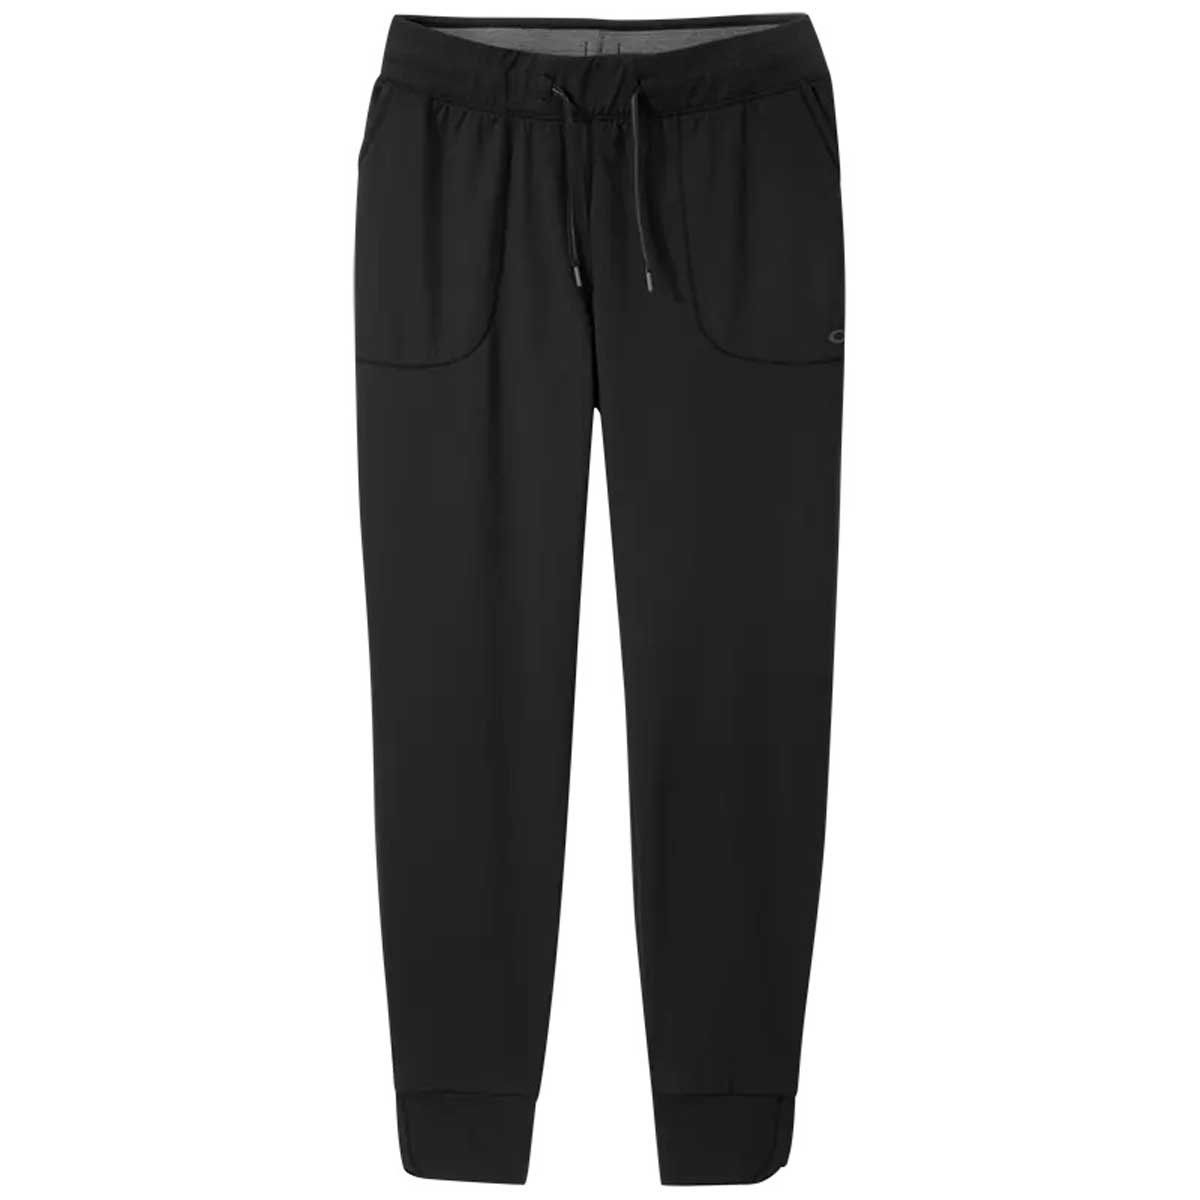 Outdoor Research Women's Melody Jogger in Black Heather